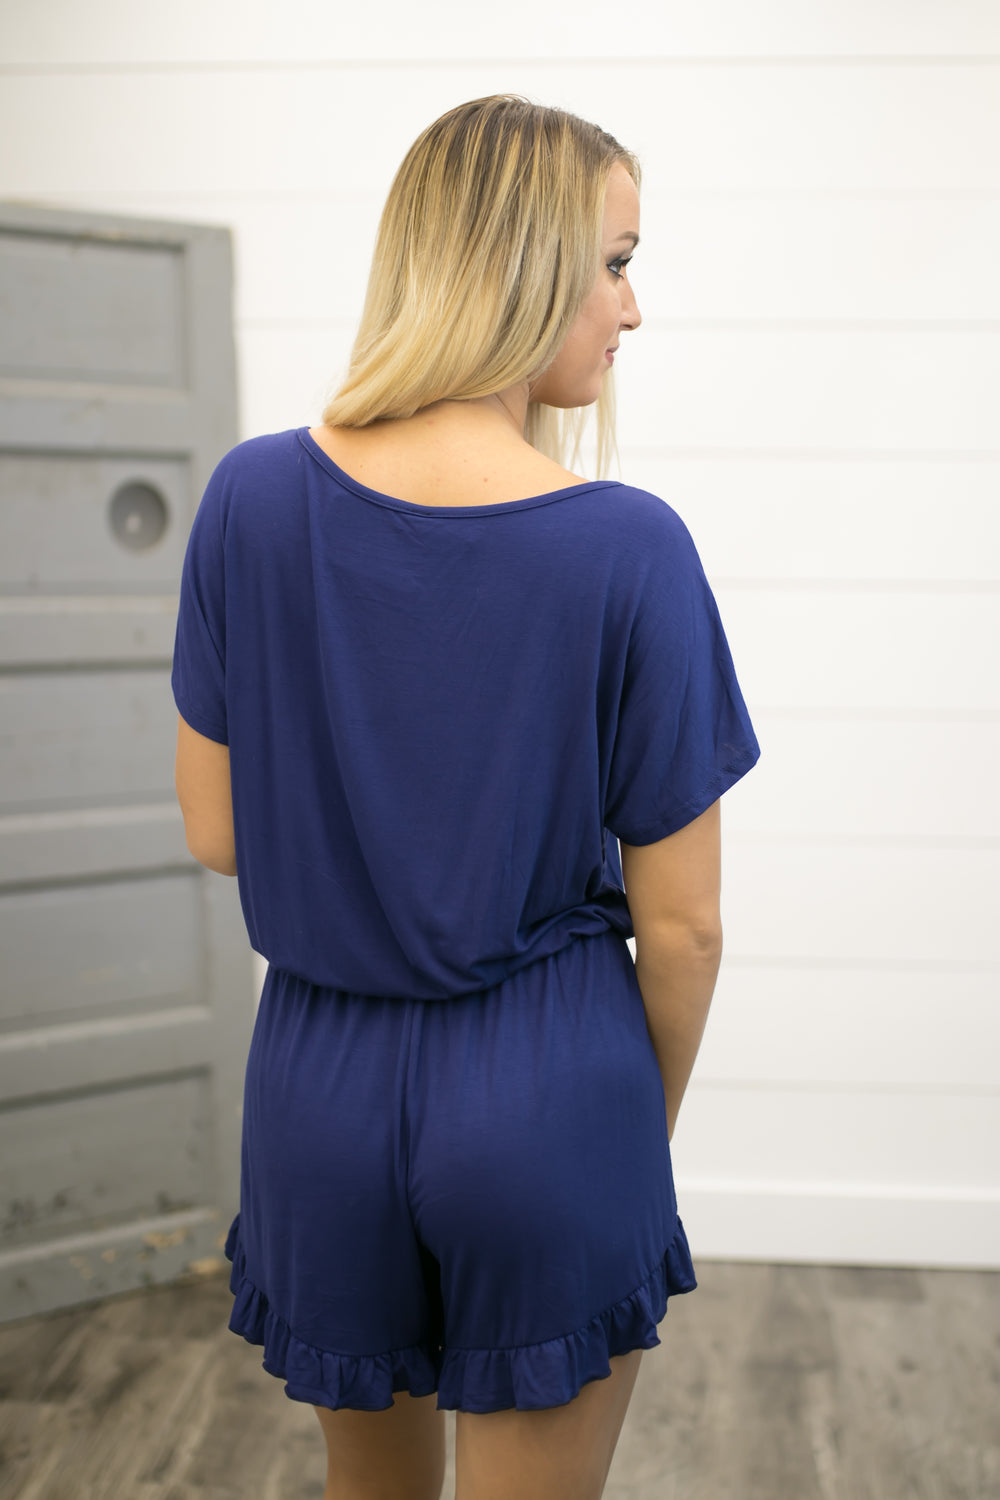 Bold Statement Romper - Navy